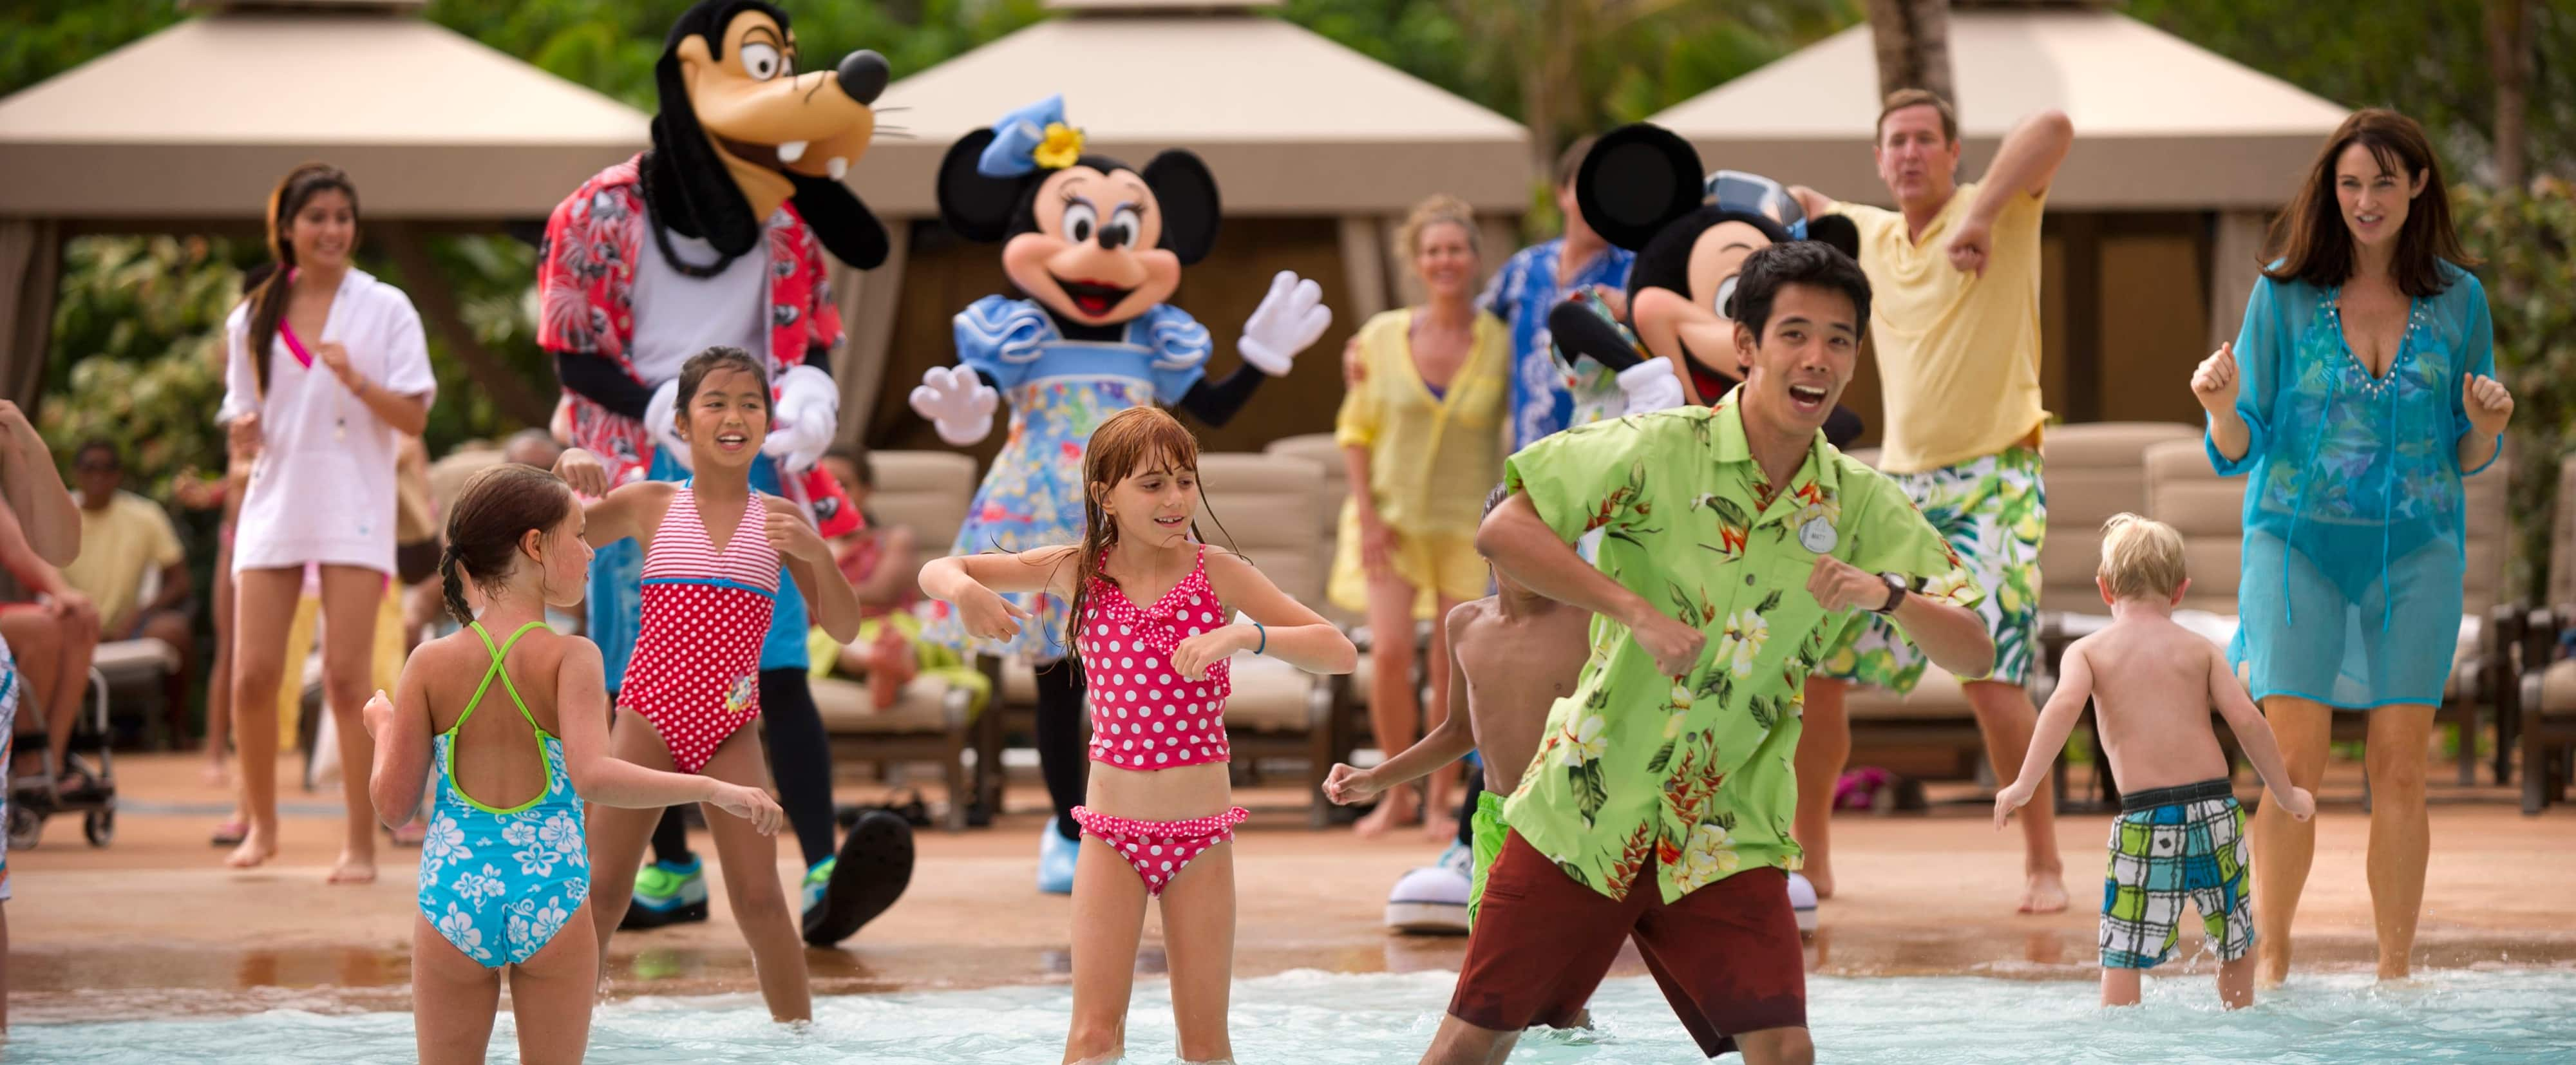 Kids, parents, Goofy, Minnie and Mickey do the chicken dance at a pool, led by a Cast Member